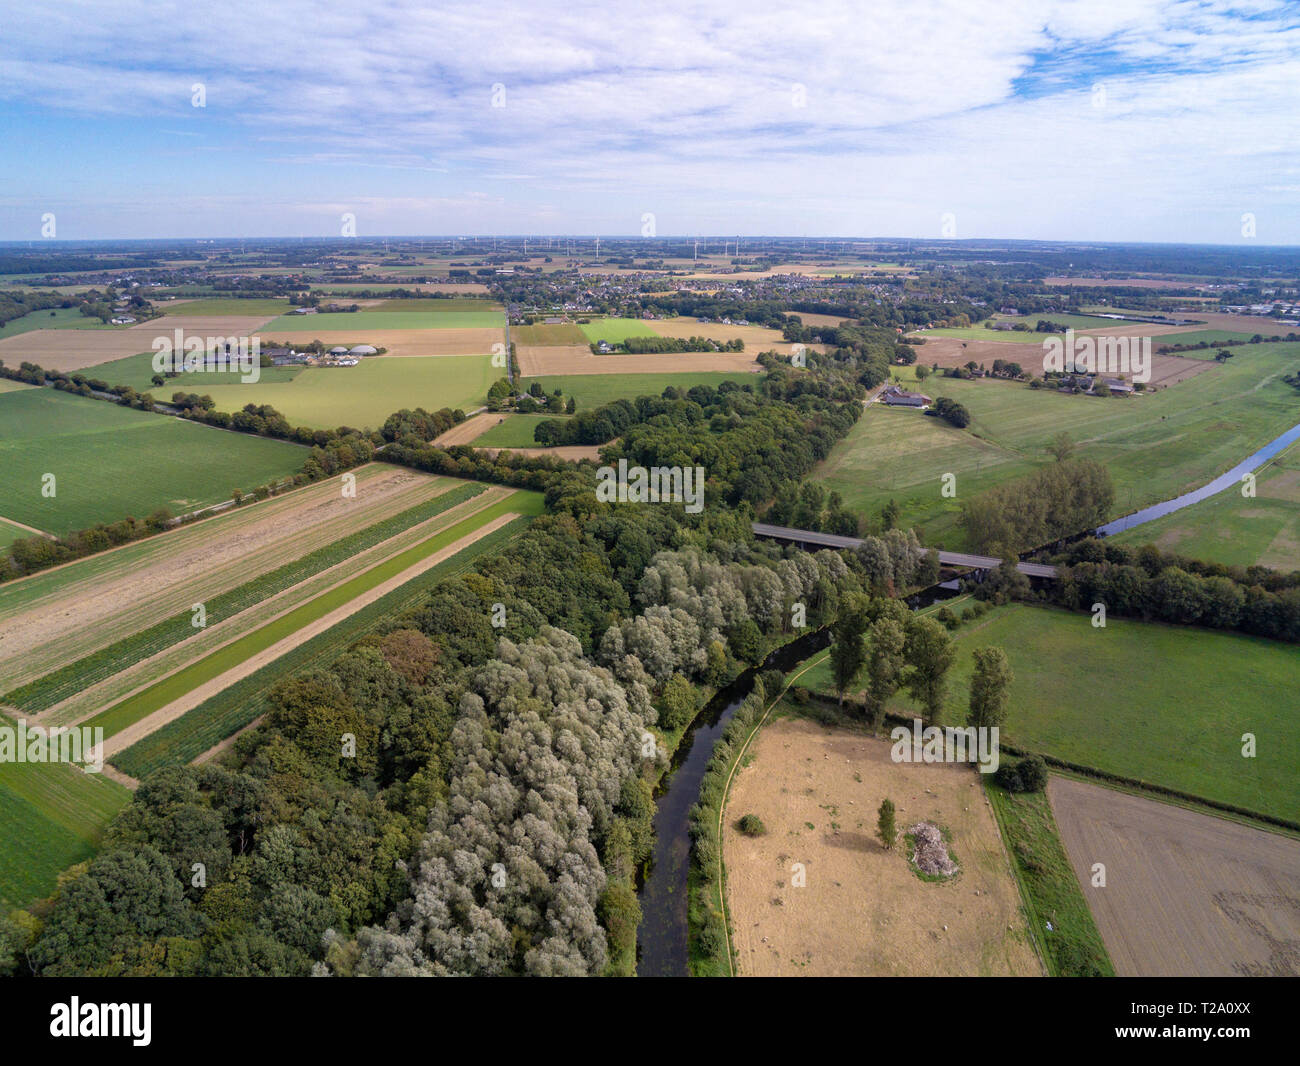 Aerial image of the Niederrhein landscape in the west of Germany Stock Photo